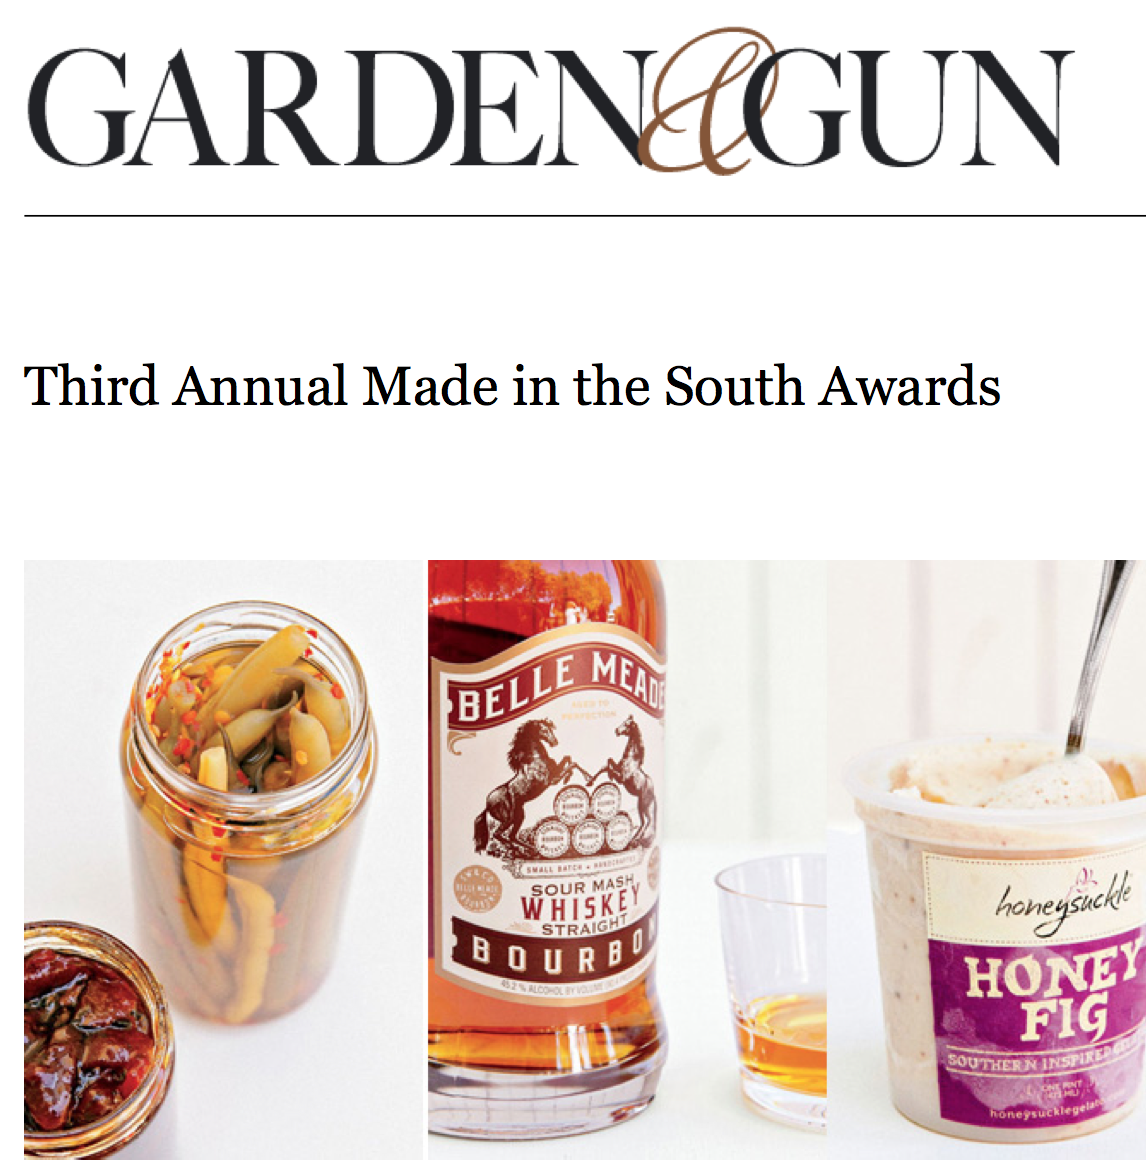 Belle Meade Bourbon featured in Garden & Gun's Third Annual Made in the South Awards